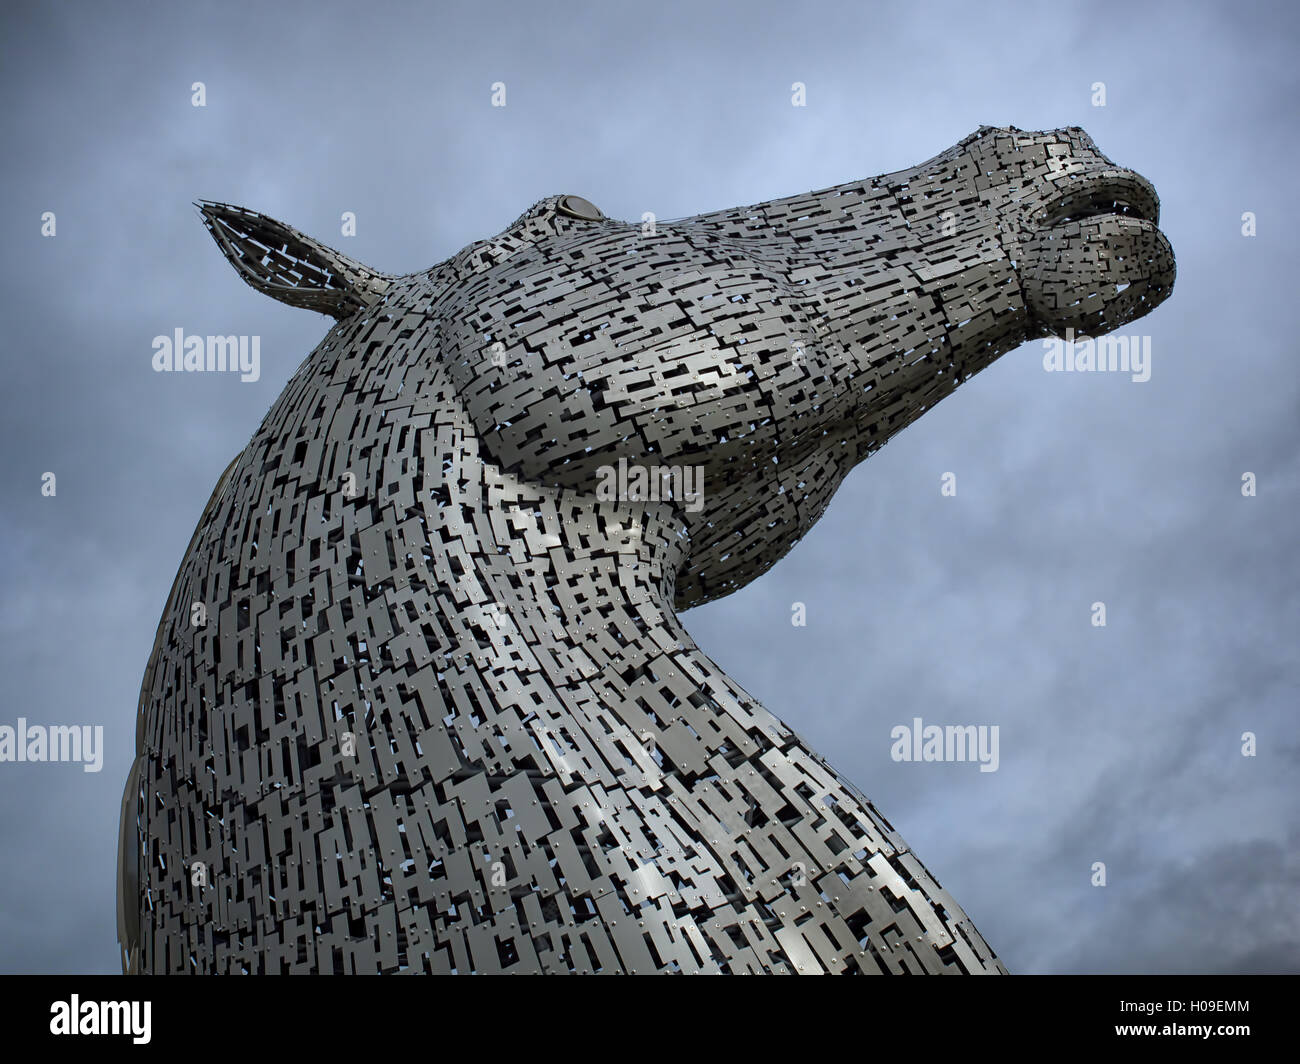 A Steel Horse Sculpture In High Resolution Stock Photography And Images Alamy